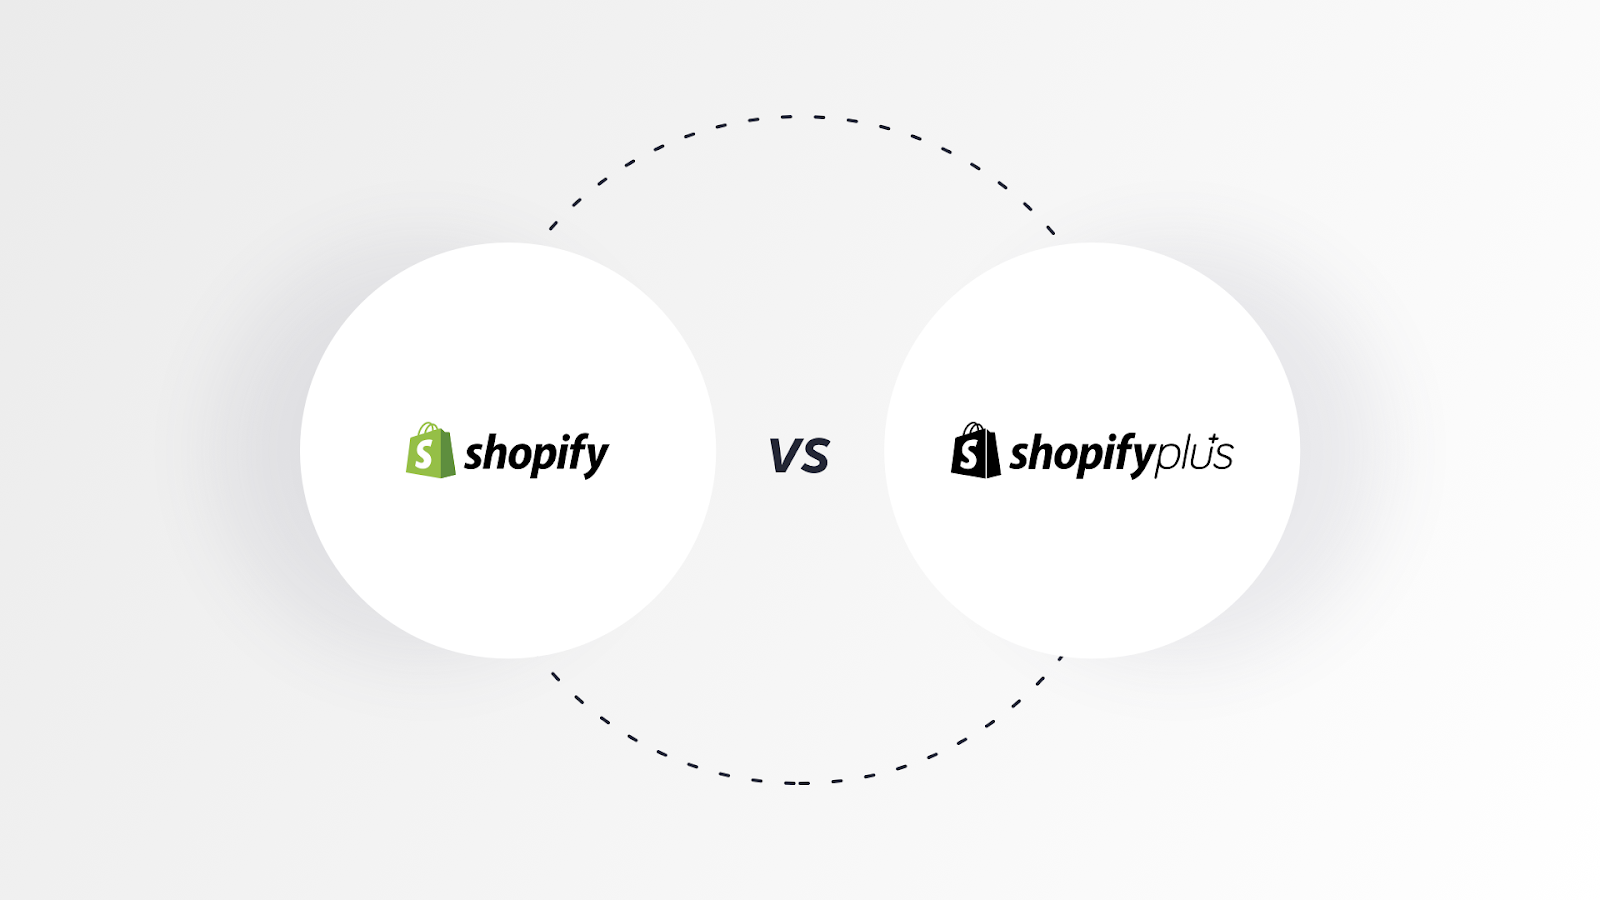 Shopify vs. Shopify Plus: What are the key differences?